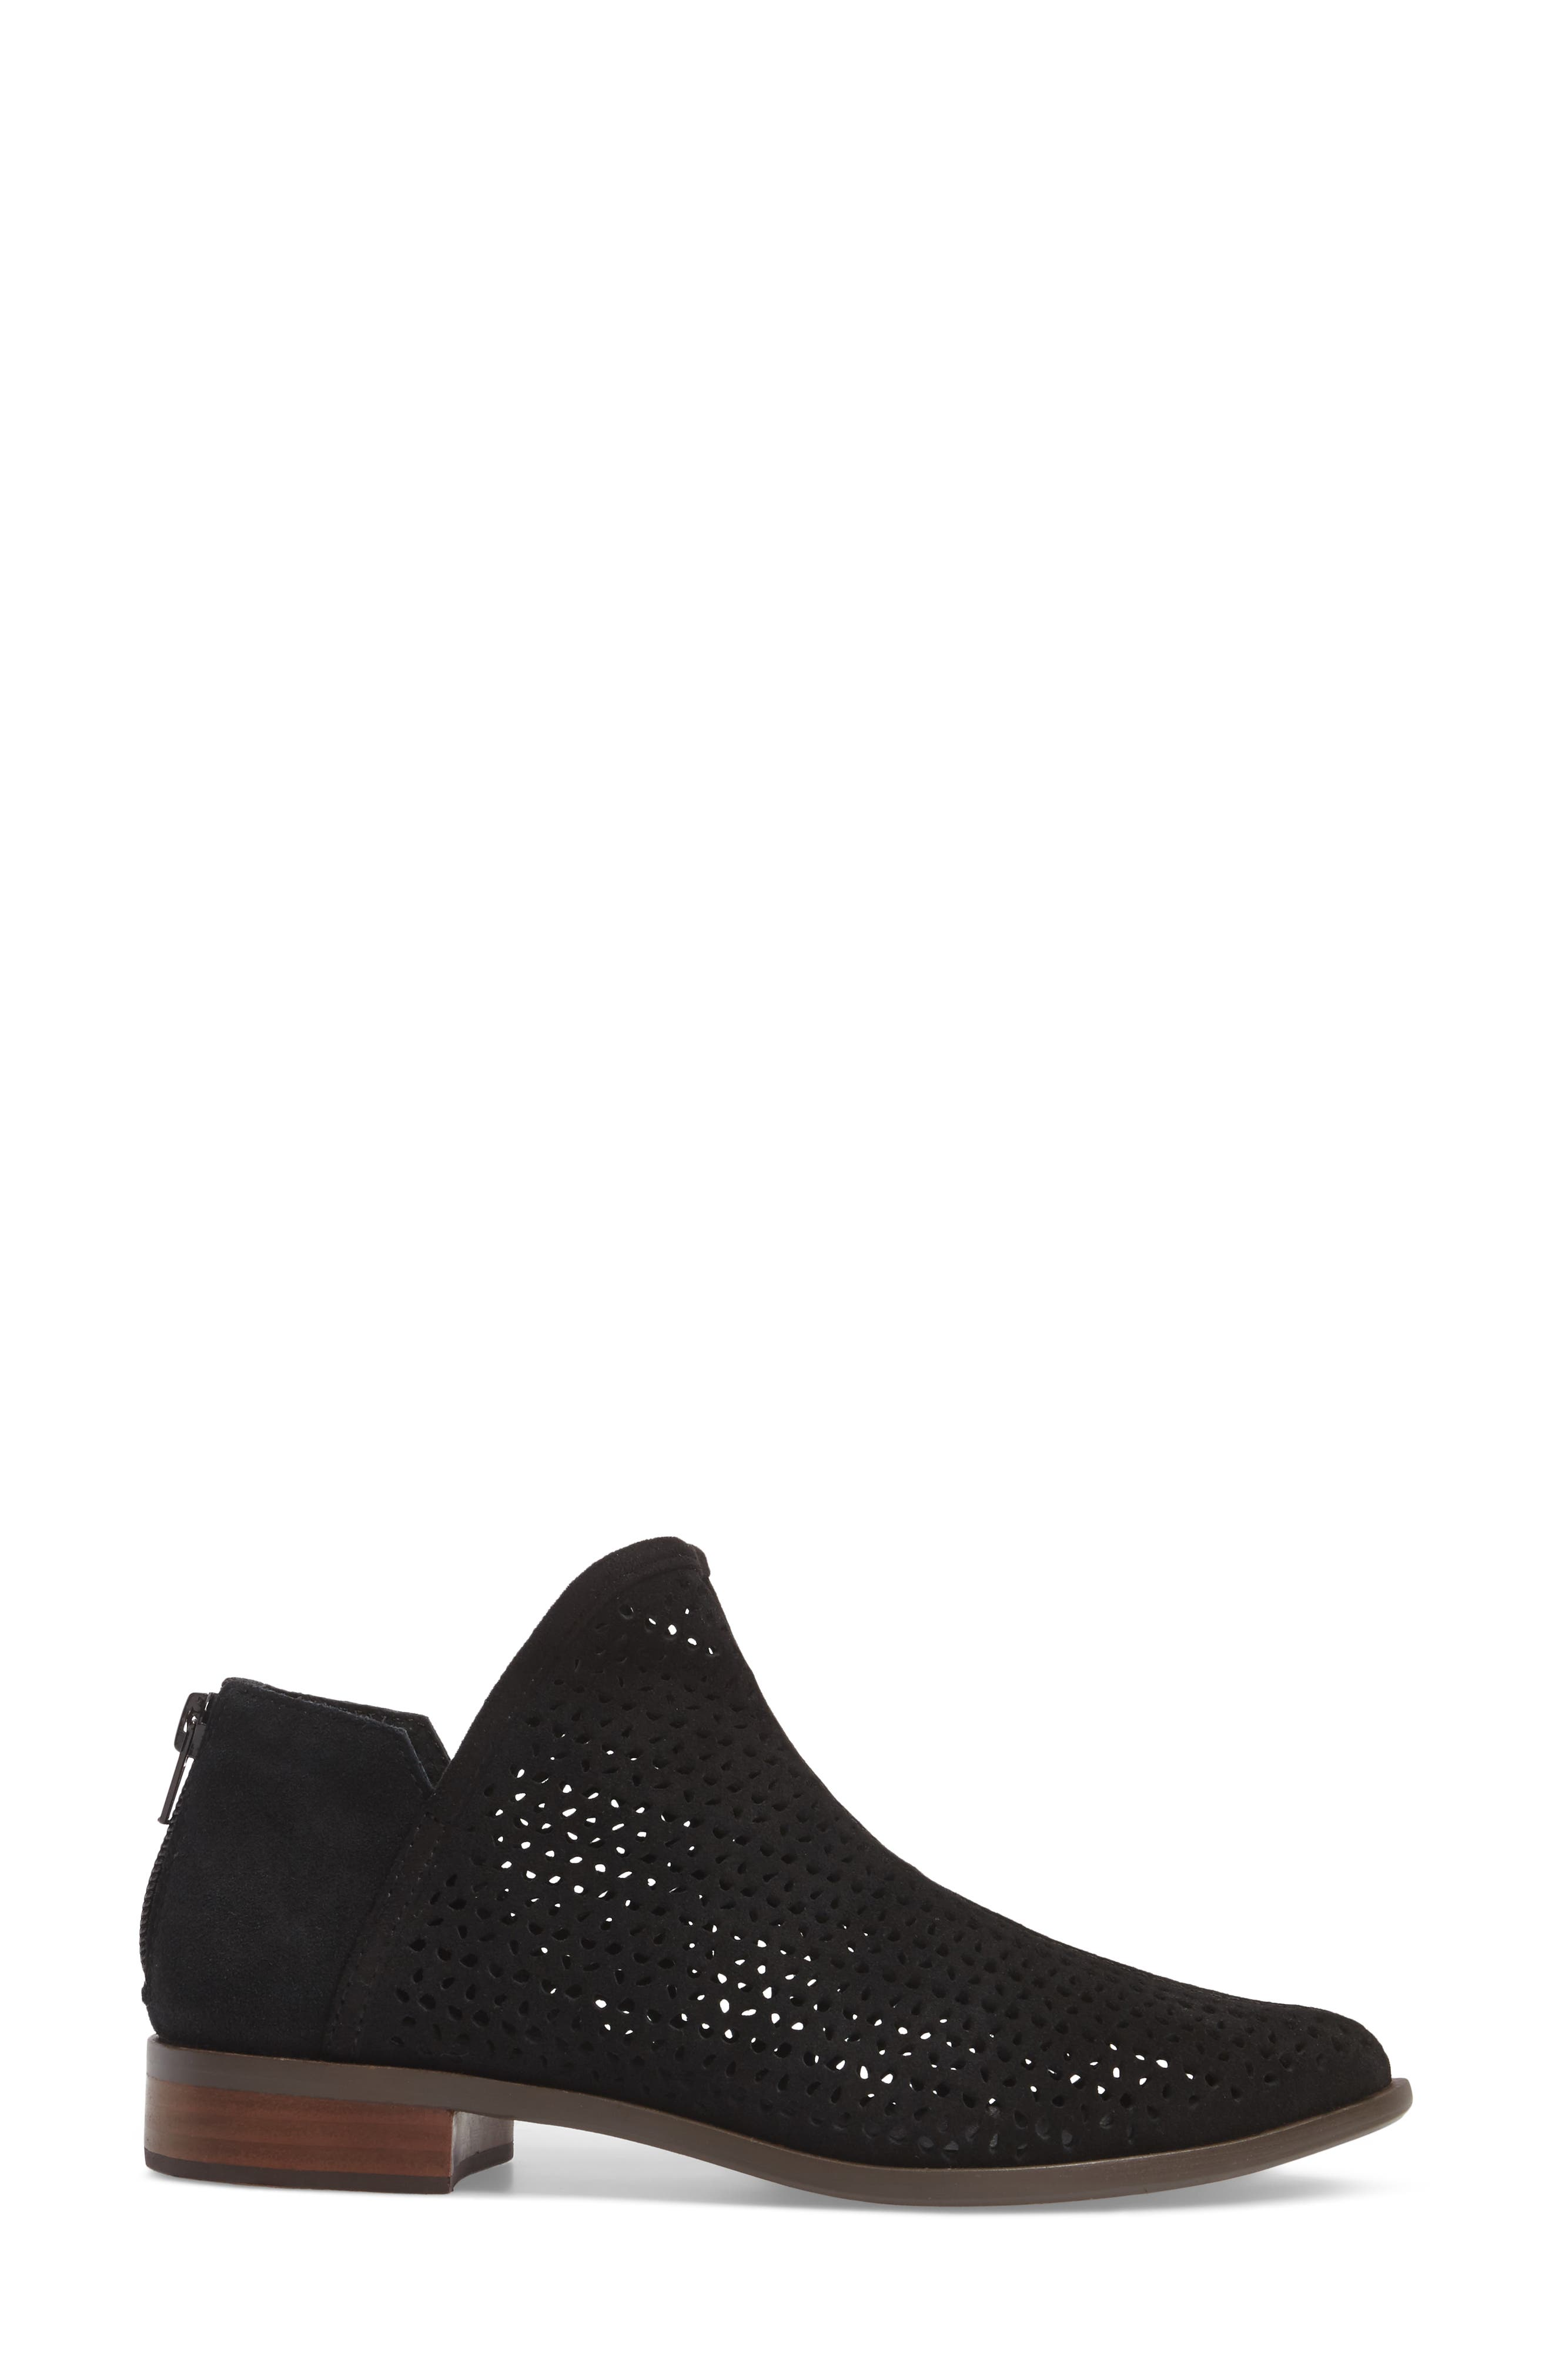 Alley Perforated Bootie,                             Alternate thumbnail 3, color,                             Black